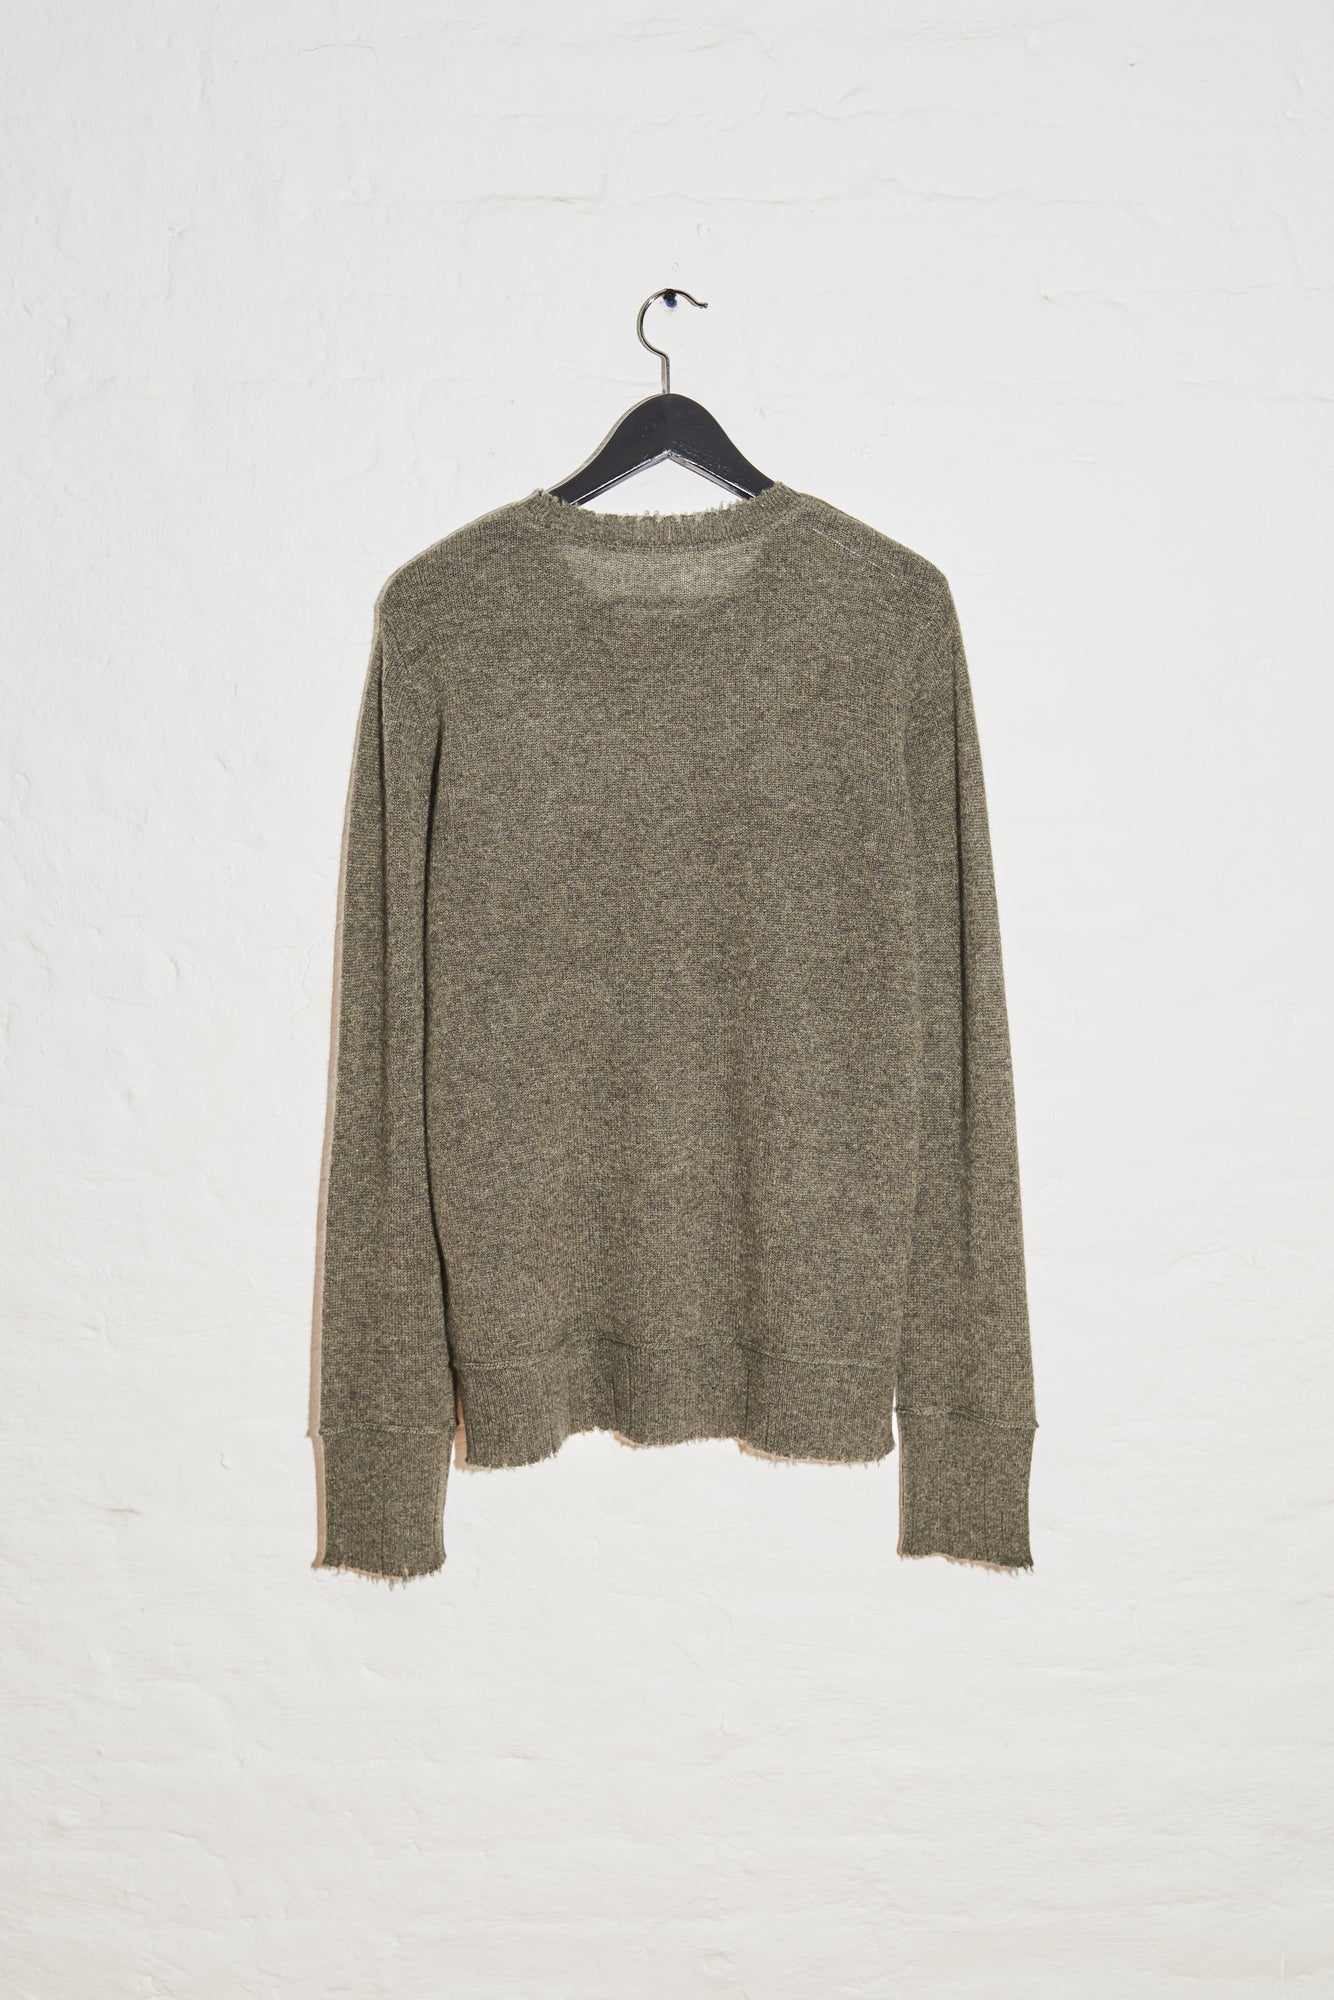 Distressed Edge Crewneck Sweater - Olive